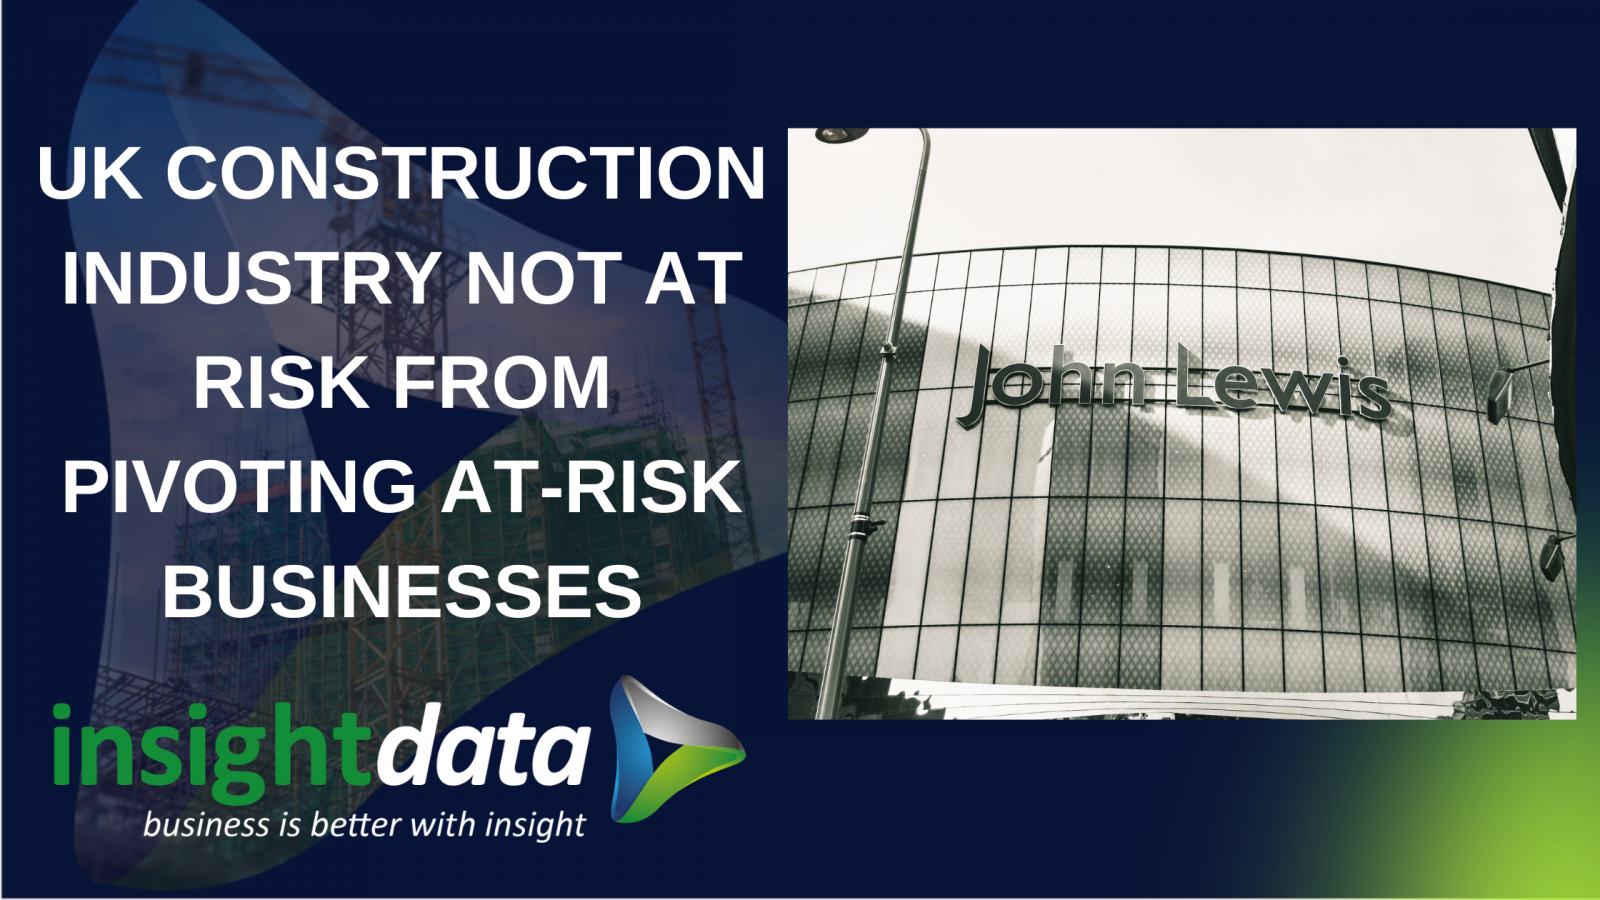 Construction industry not at risk article representing Insight Data